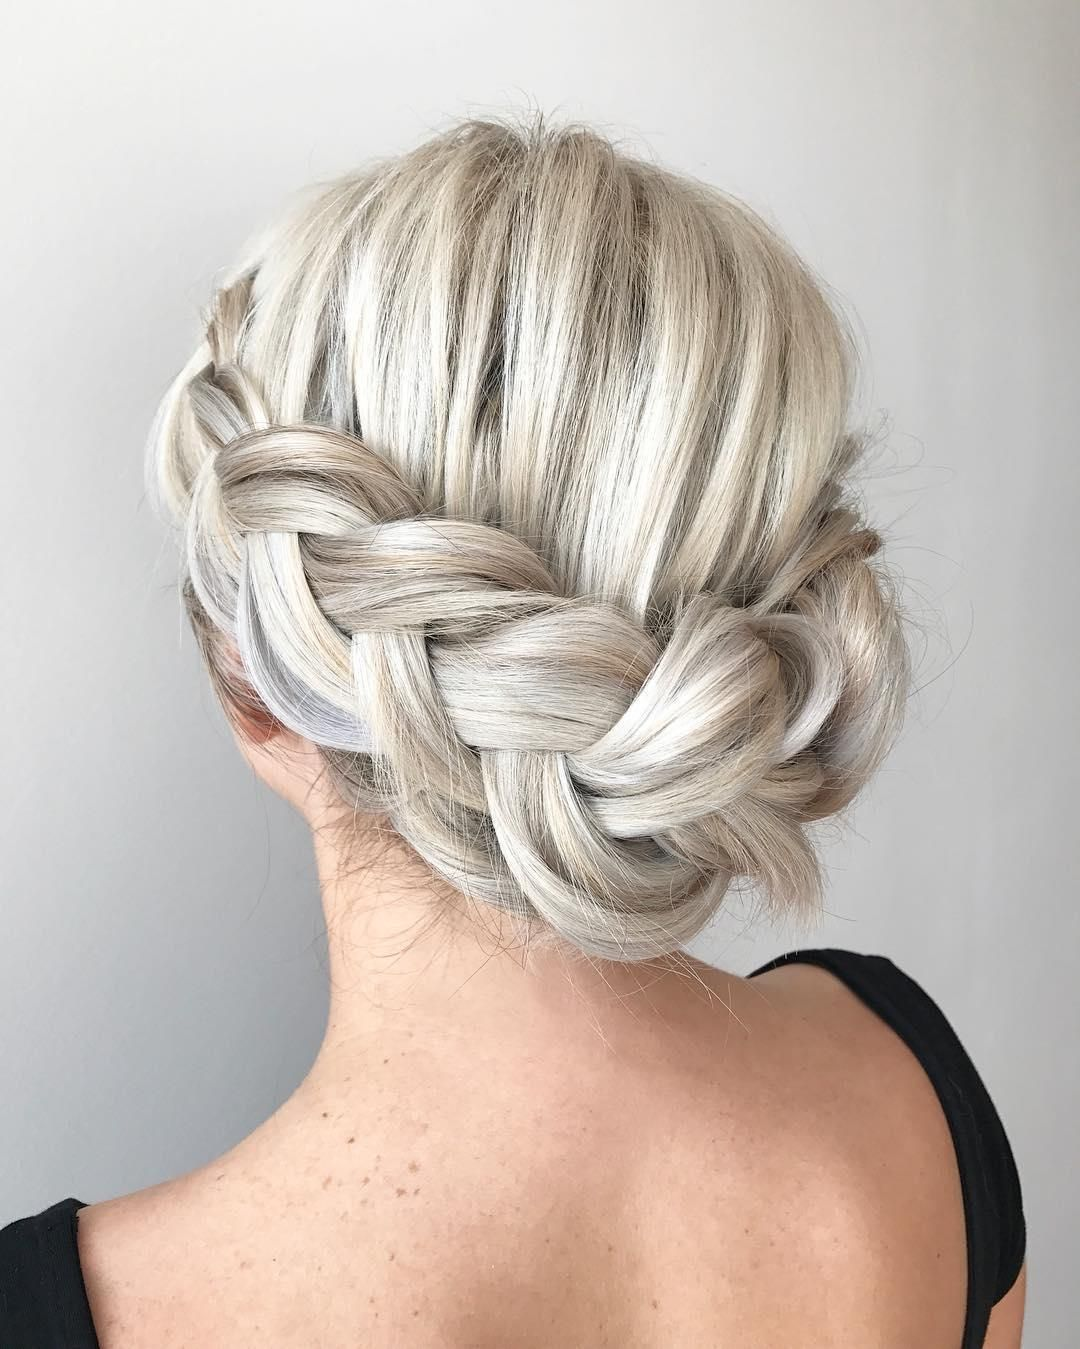 Braid Hairstyles For Wedding Party: Thick Textured Platinum Blonde Dutch Braids From Aveda